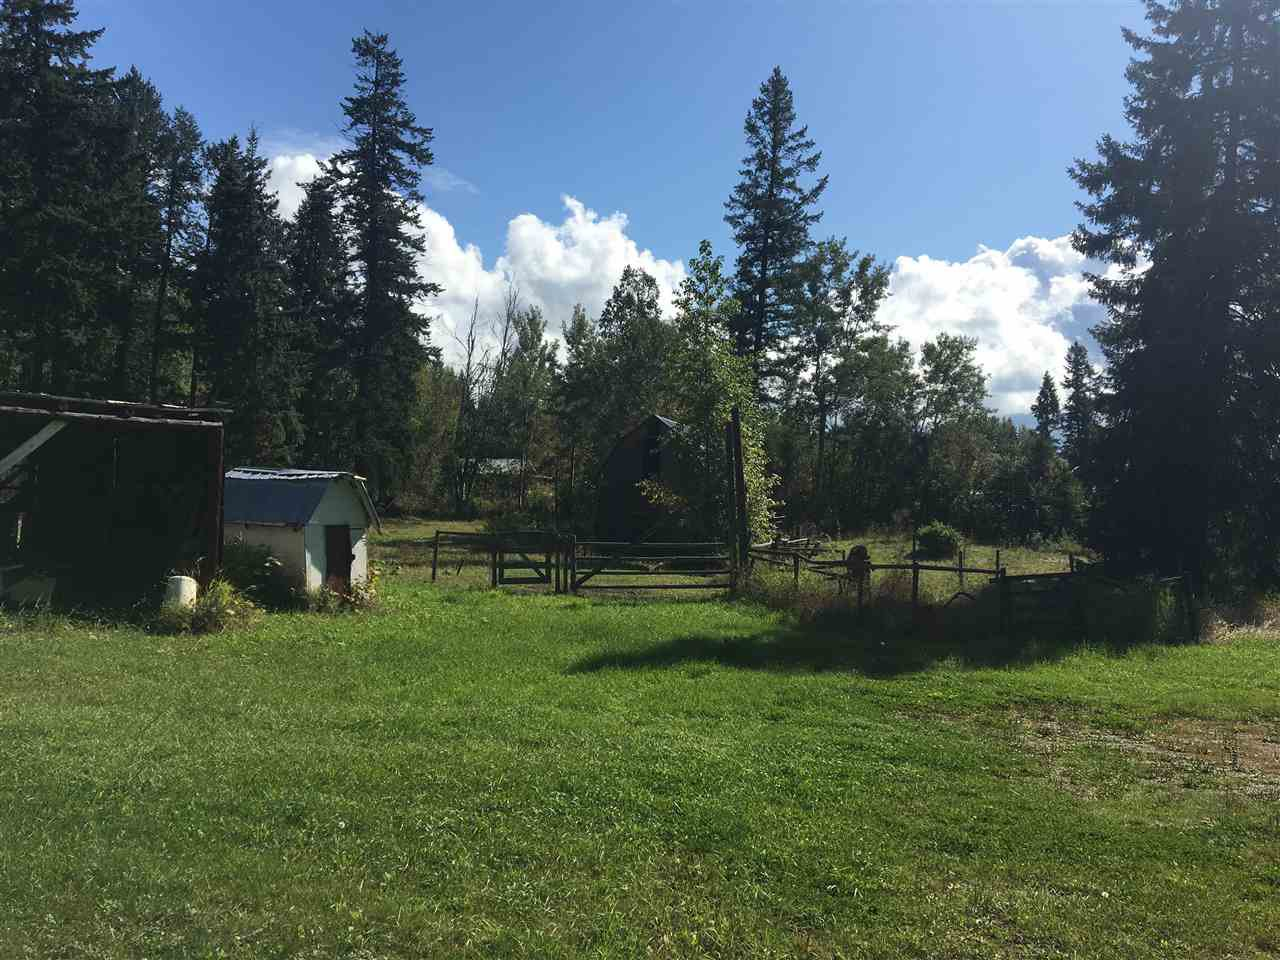 Photo 10: Photos: 4257 WHITECOTTON Road in Quesnel: Quesnel Rural - South Manufactured Home for sale (Quesnel (Zone 28))  : MLS®# R2479677